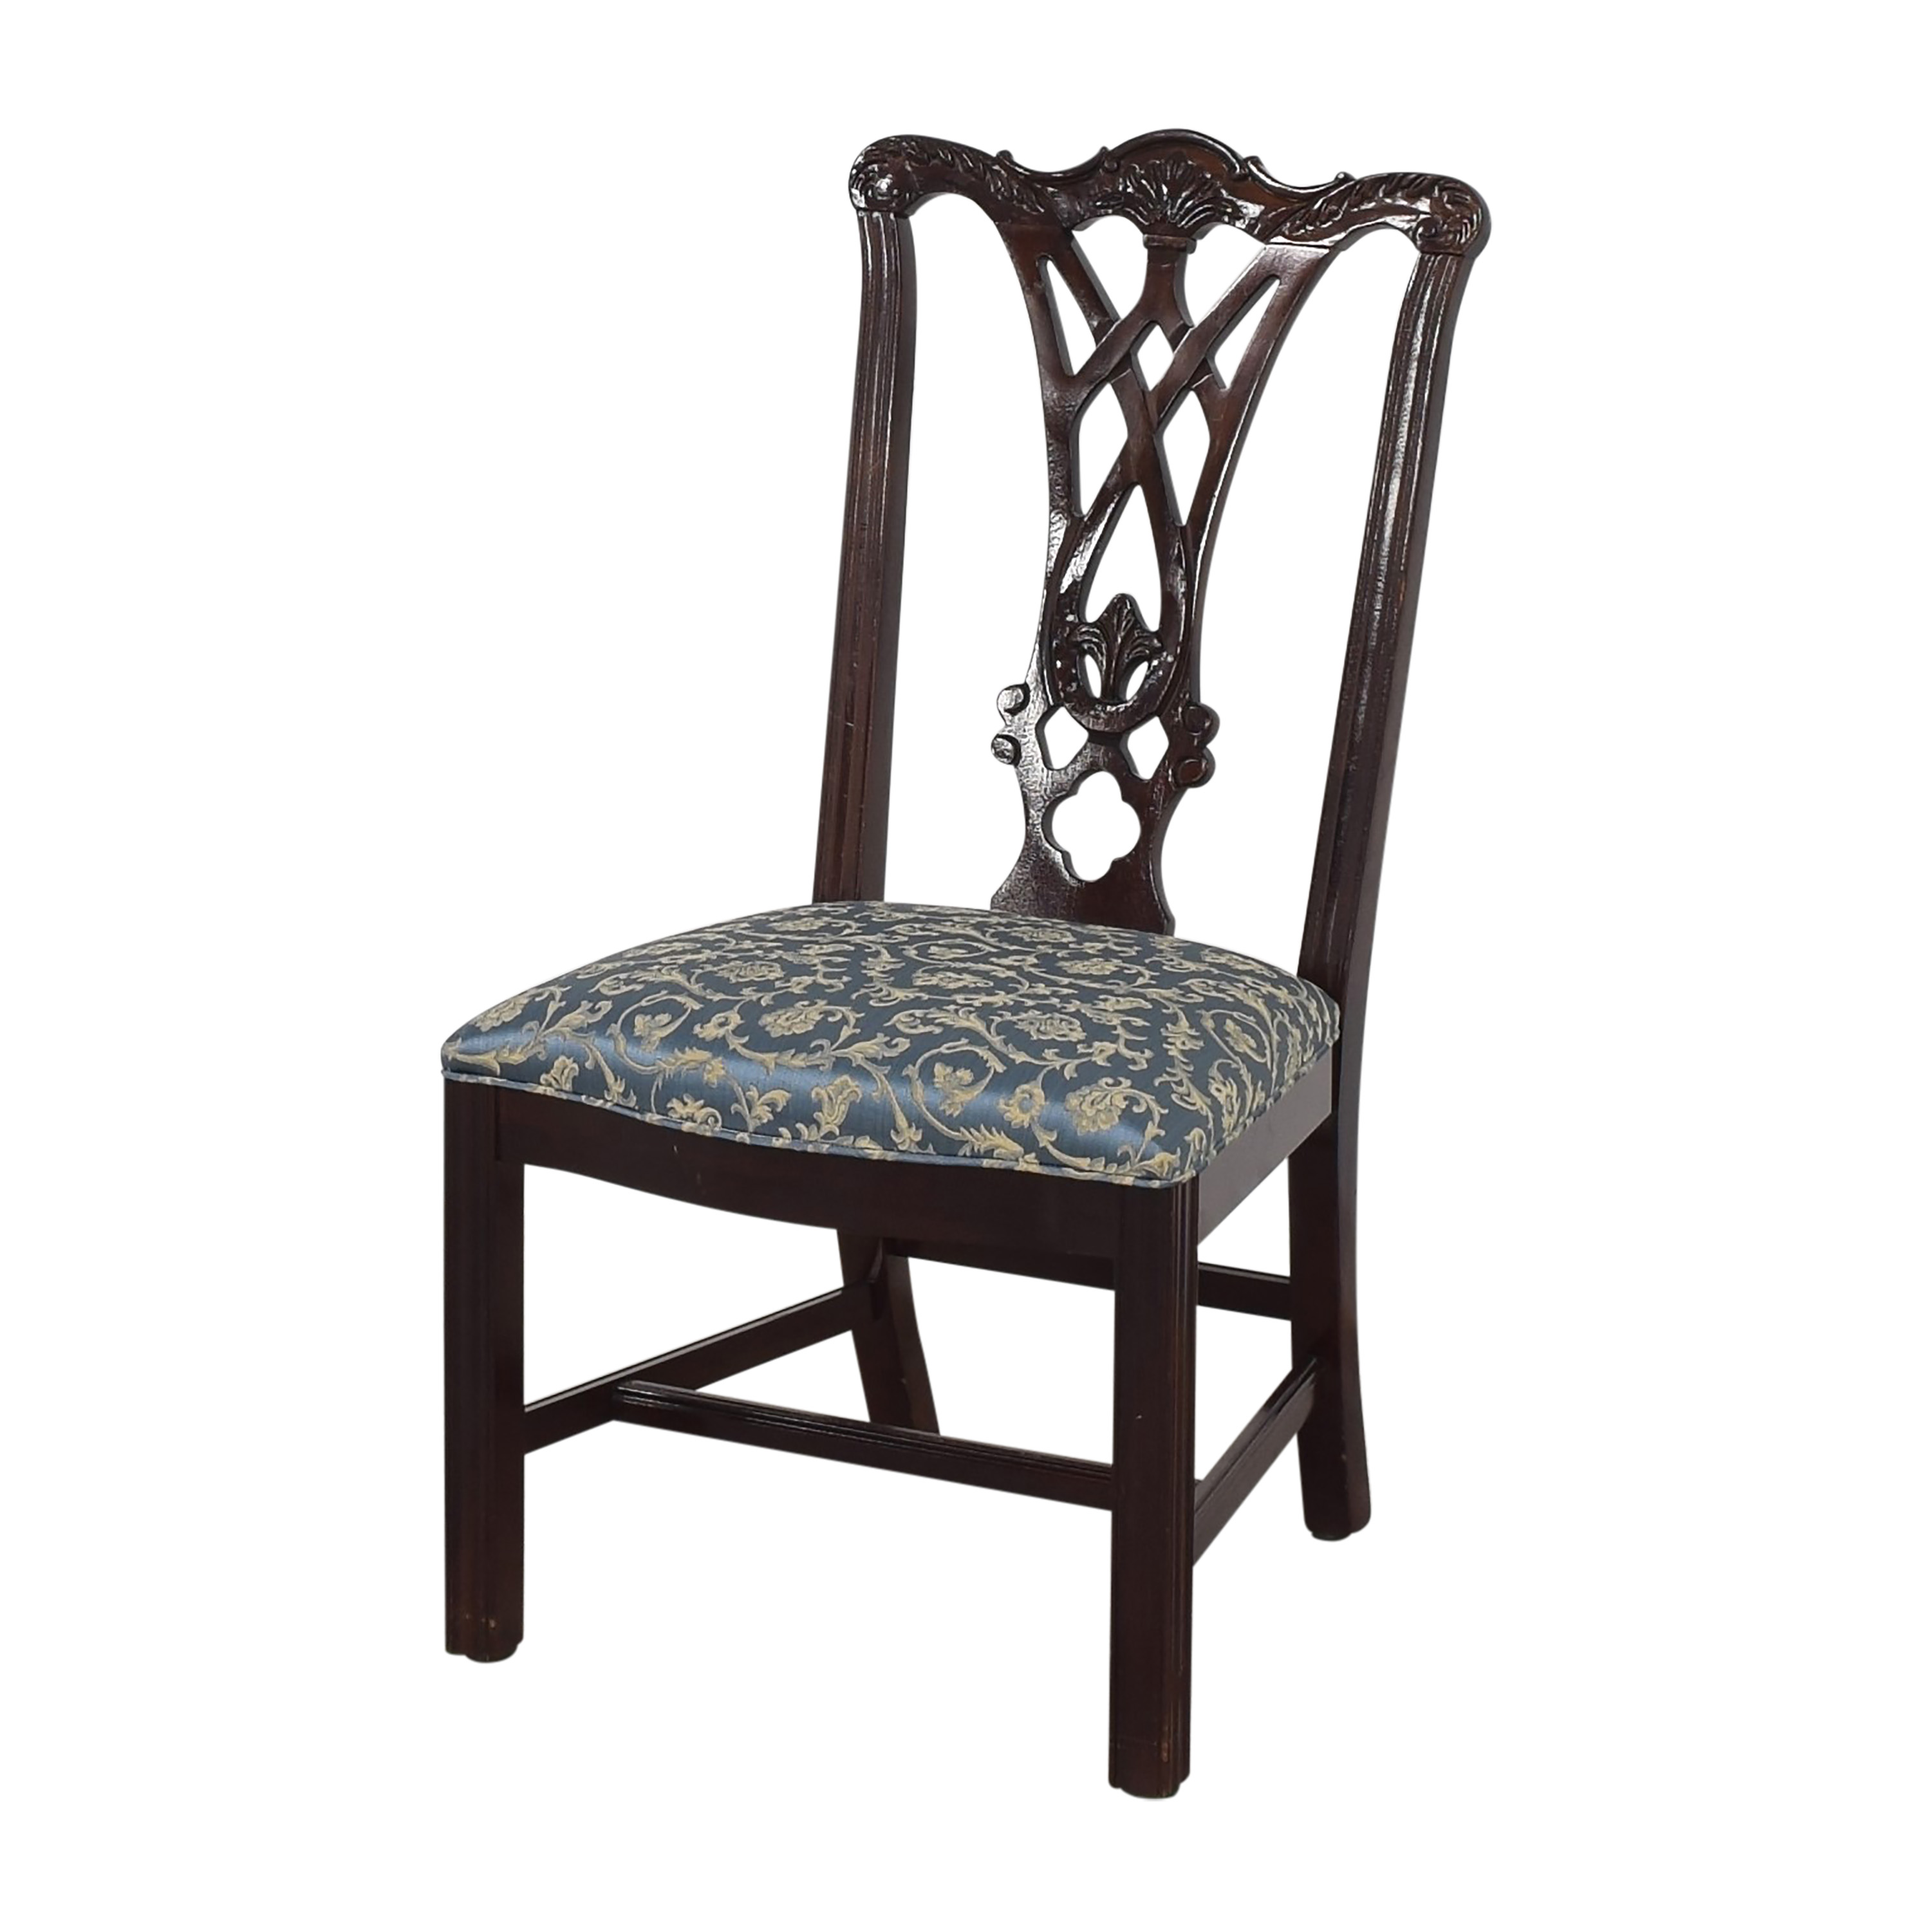 Thomasville Thomasville Chippendale Style Dining Chairs price